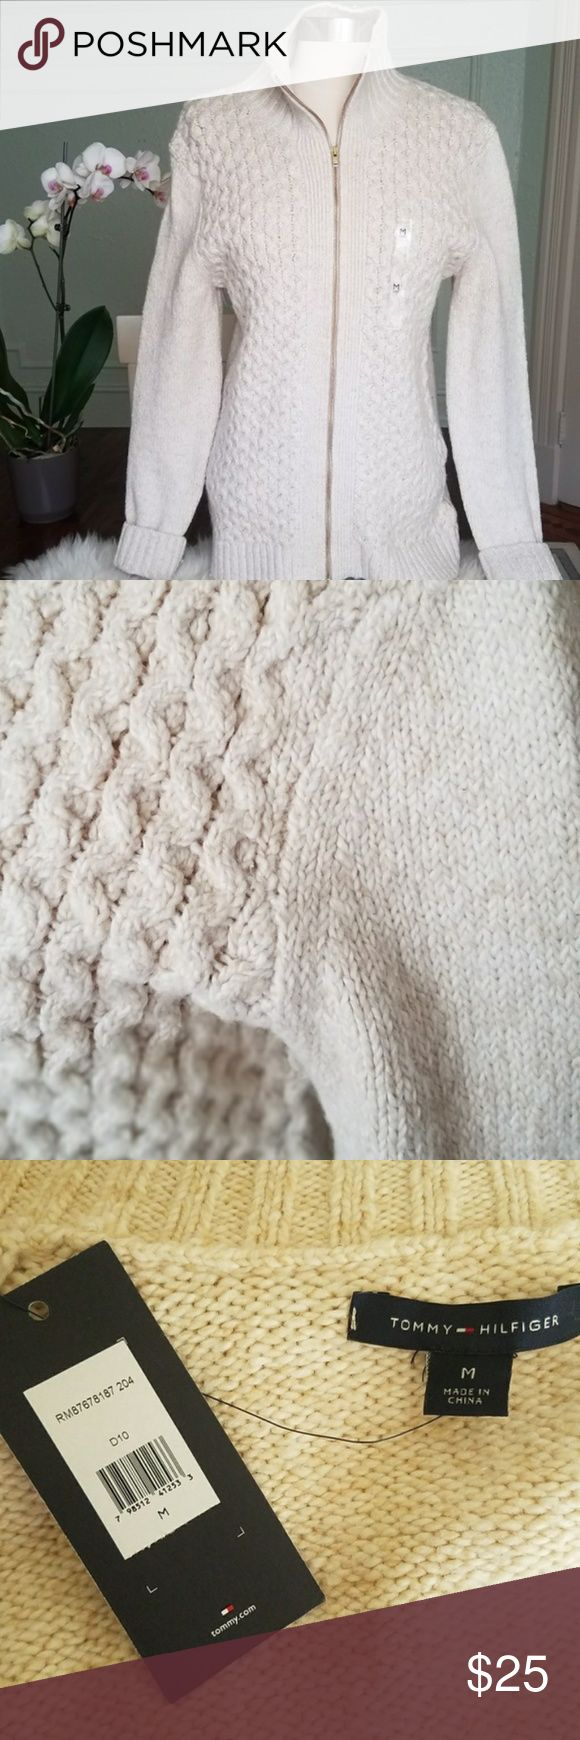 Tommy Hill figure beige zip-up sweater nwt. Tommy Hill figure beige zip-up sweater nwt. Gold zipper Knitted sleeves with intricate knitted front. Tommy Hilfiger Sweaters